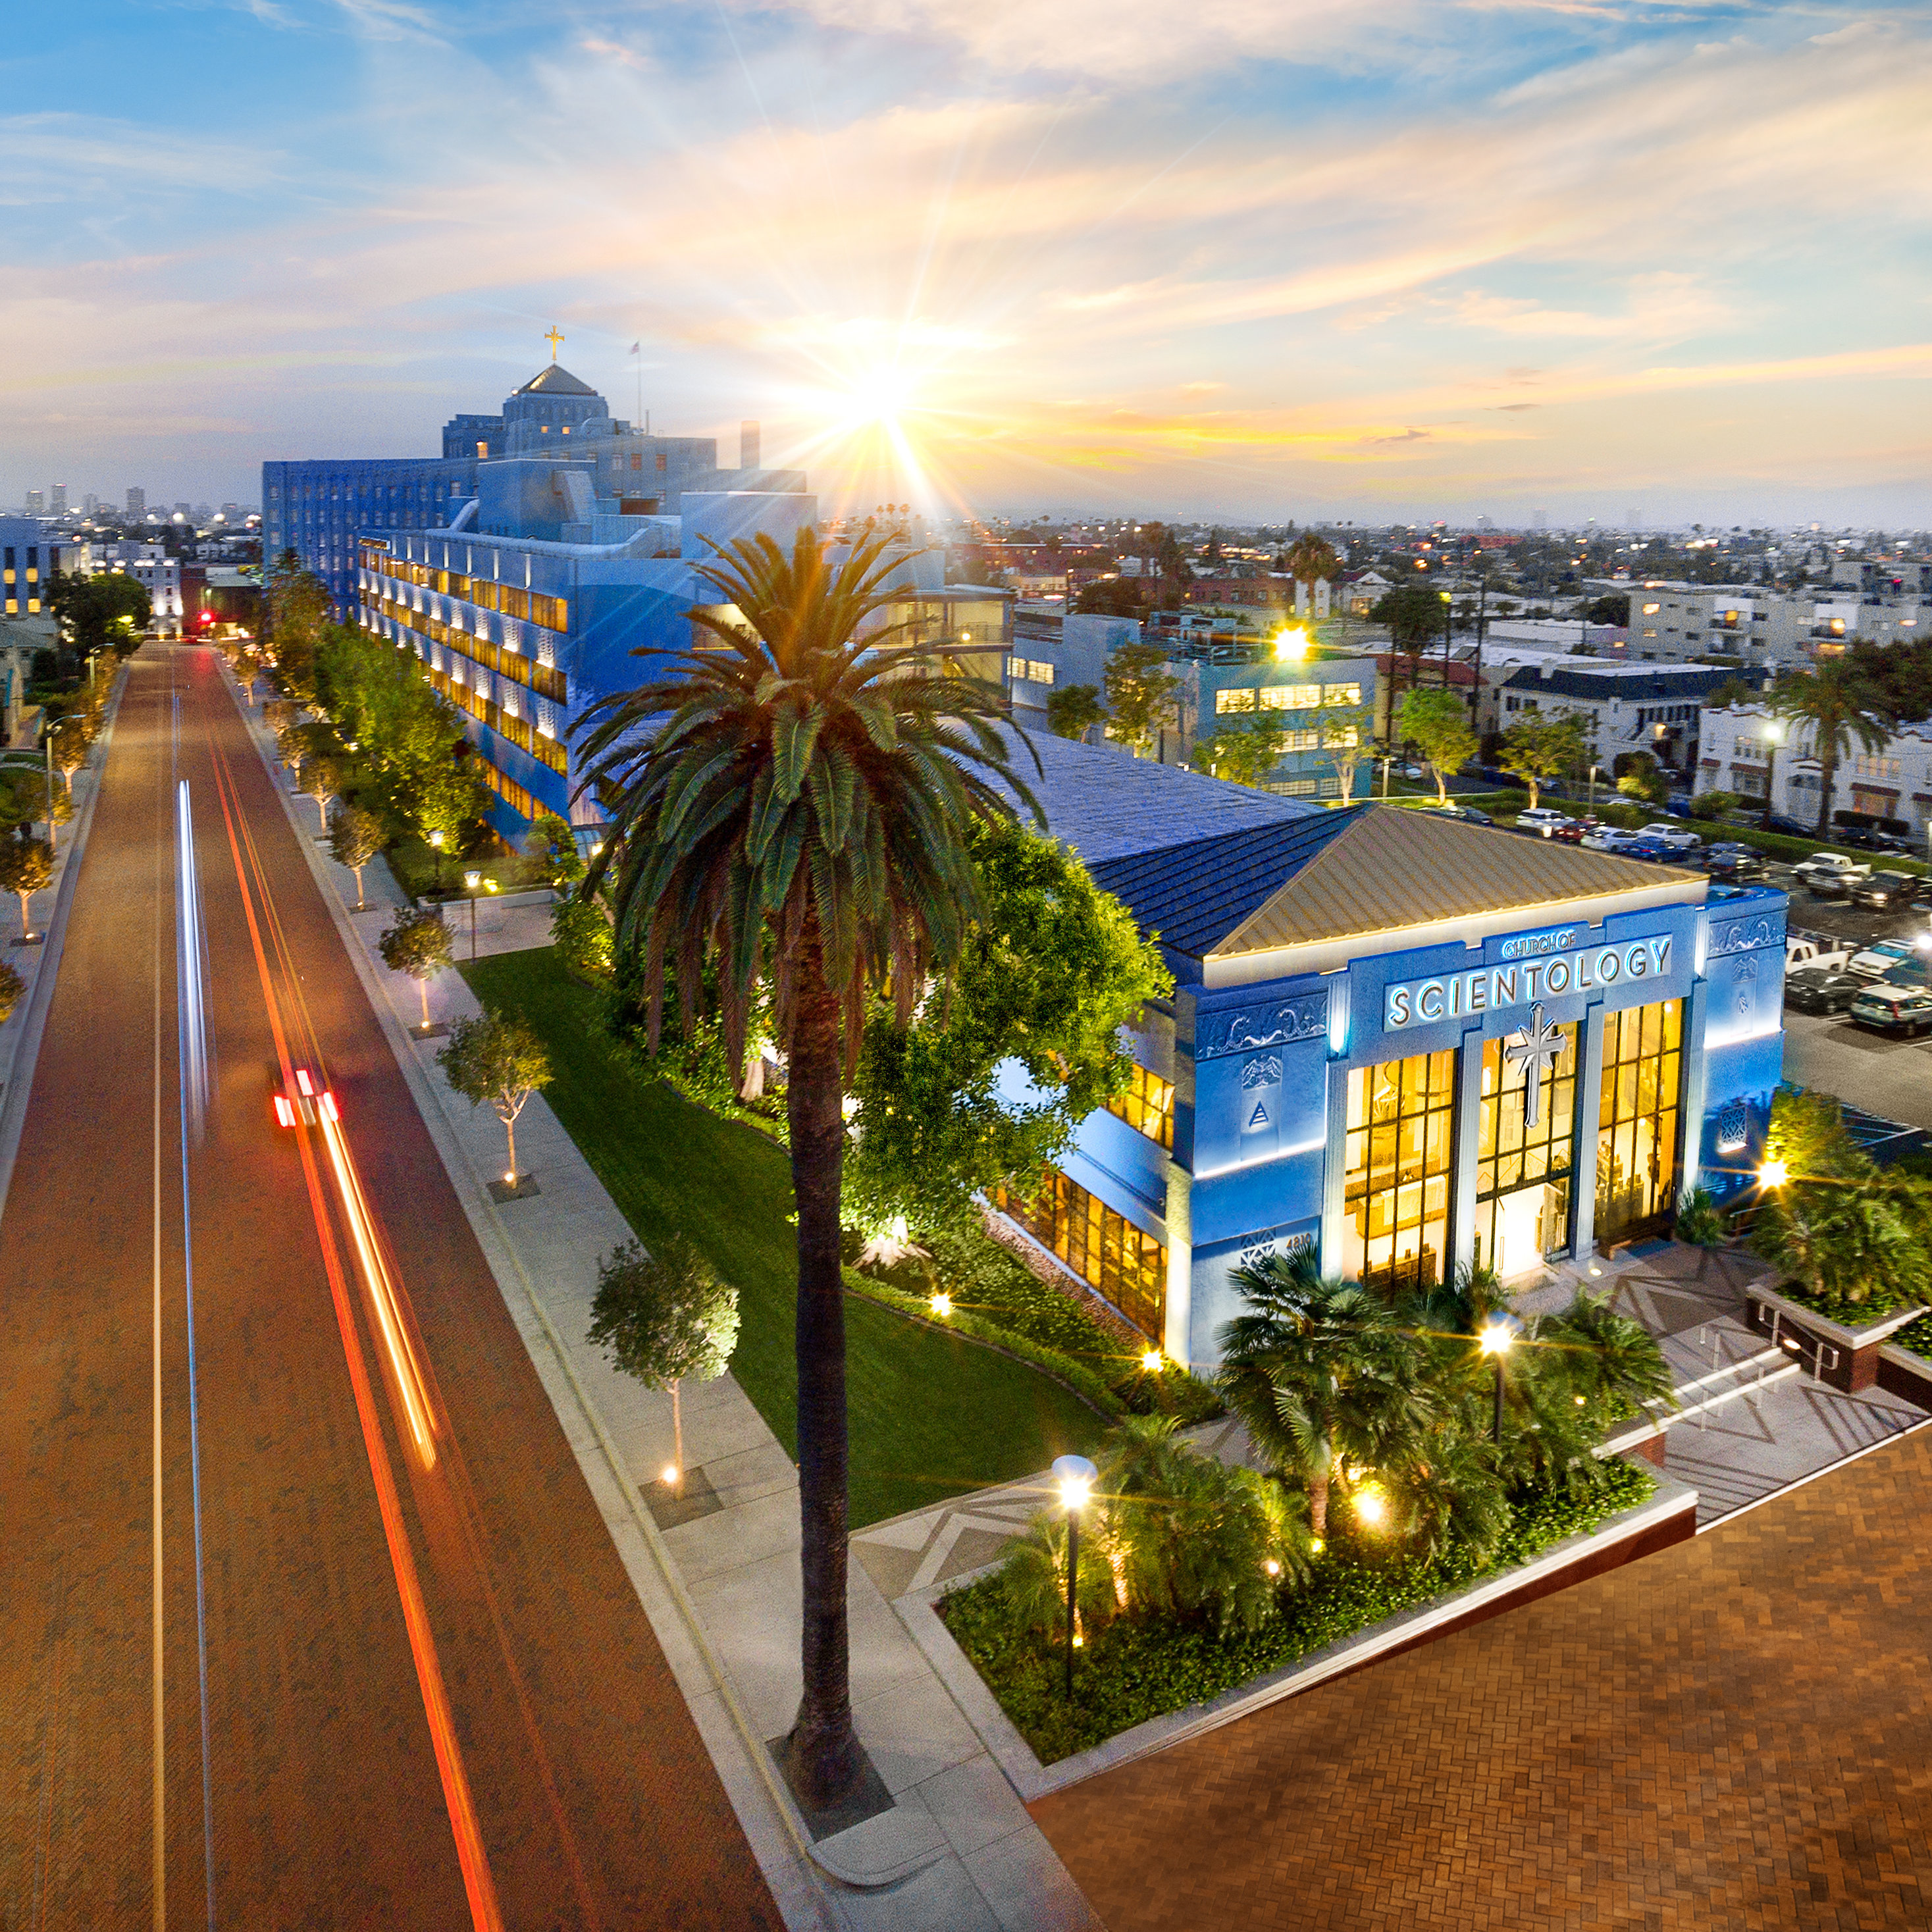 Los Angeles Viewers are given full access to the sights and happenings inside the Church of Scientology located along Sunset Boulevard and L.Ron Hubbard Way.